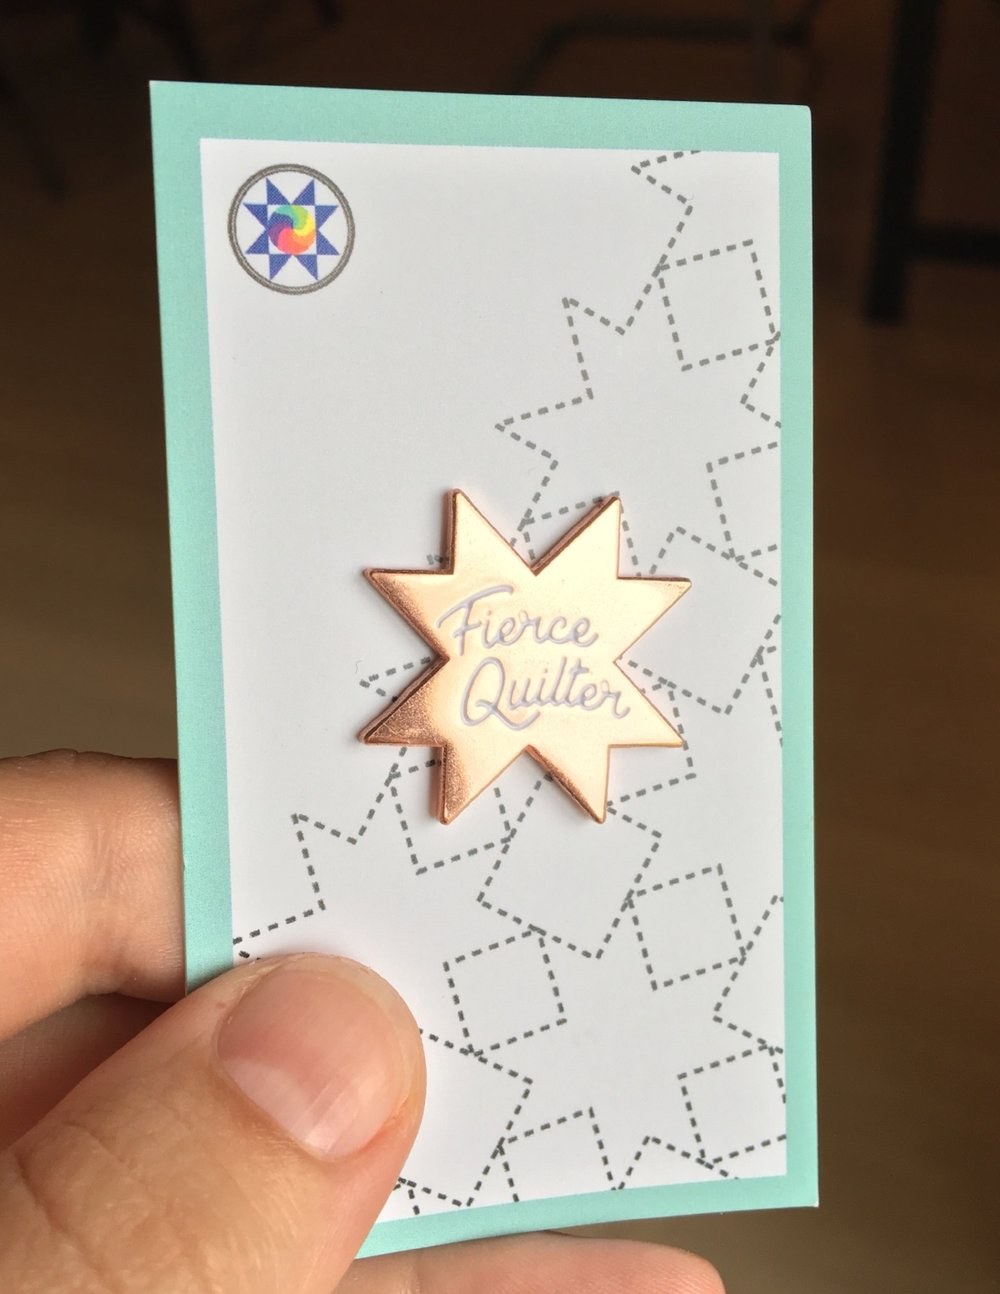 Click the photo to buy your own pin from Eye Candy Quilts! You might as well pick up a second pin for a fierce quilter friend!